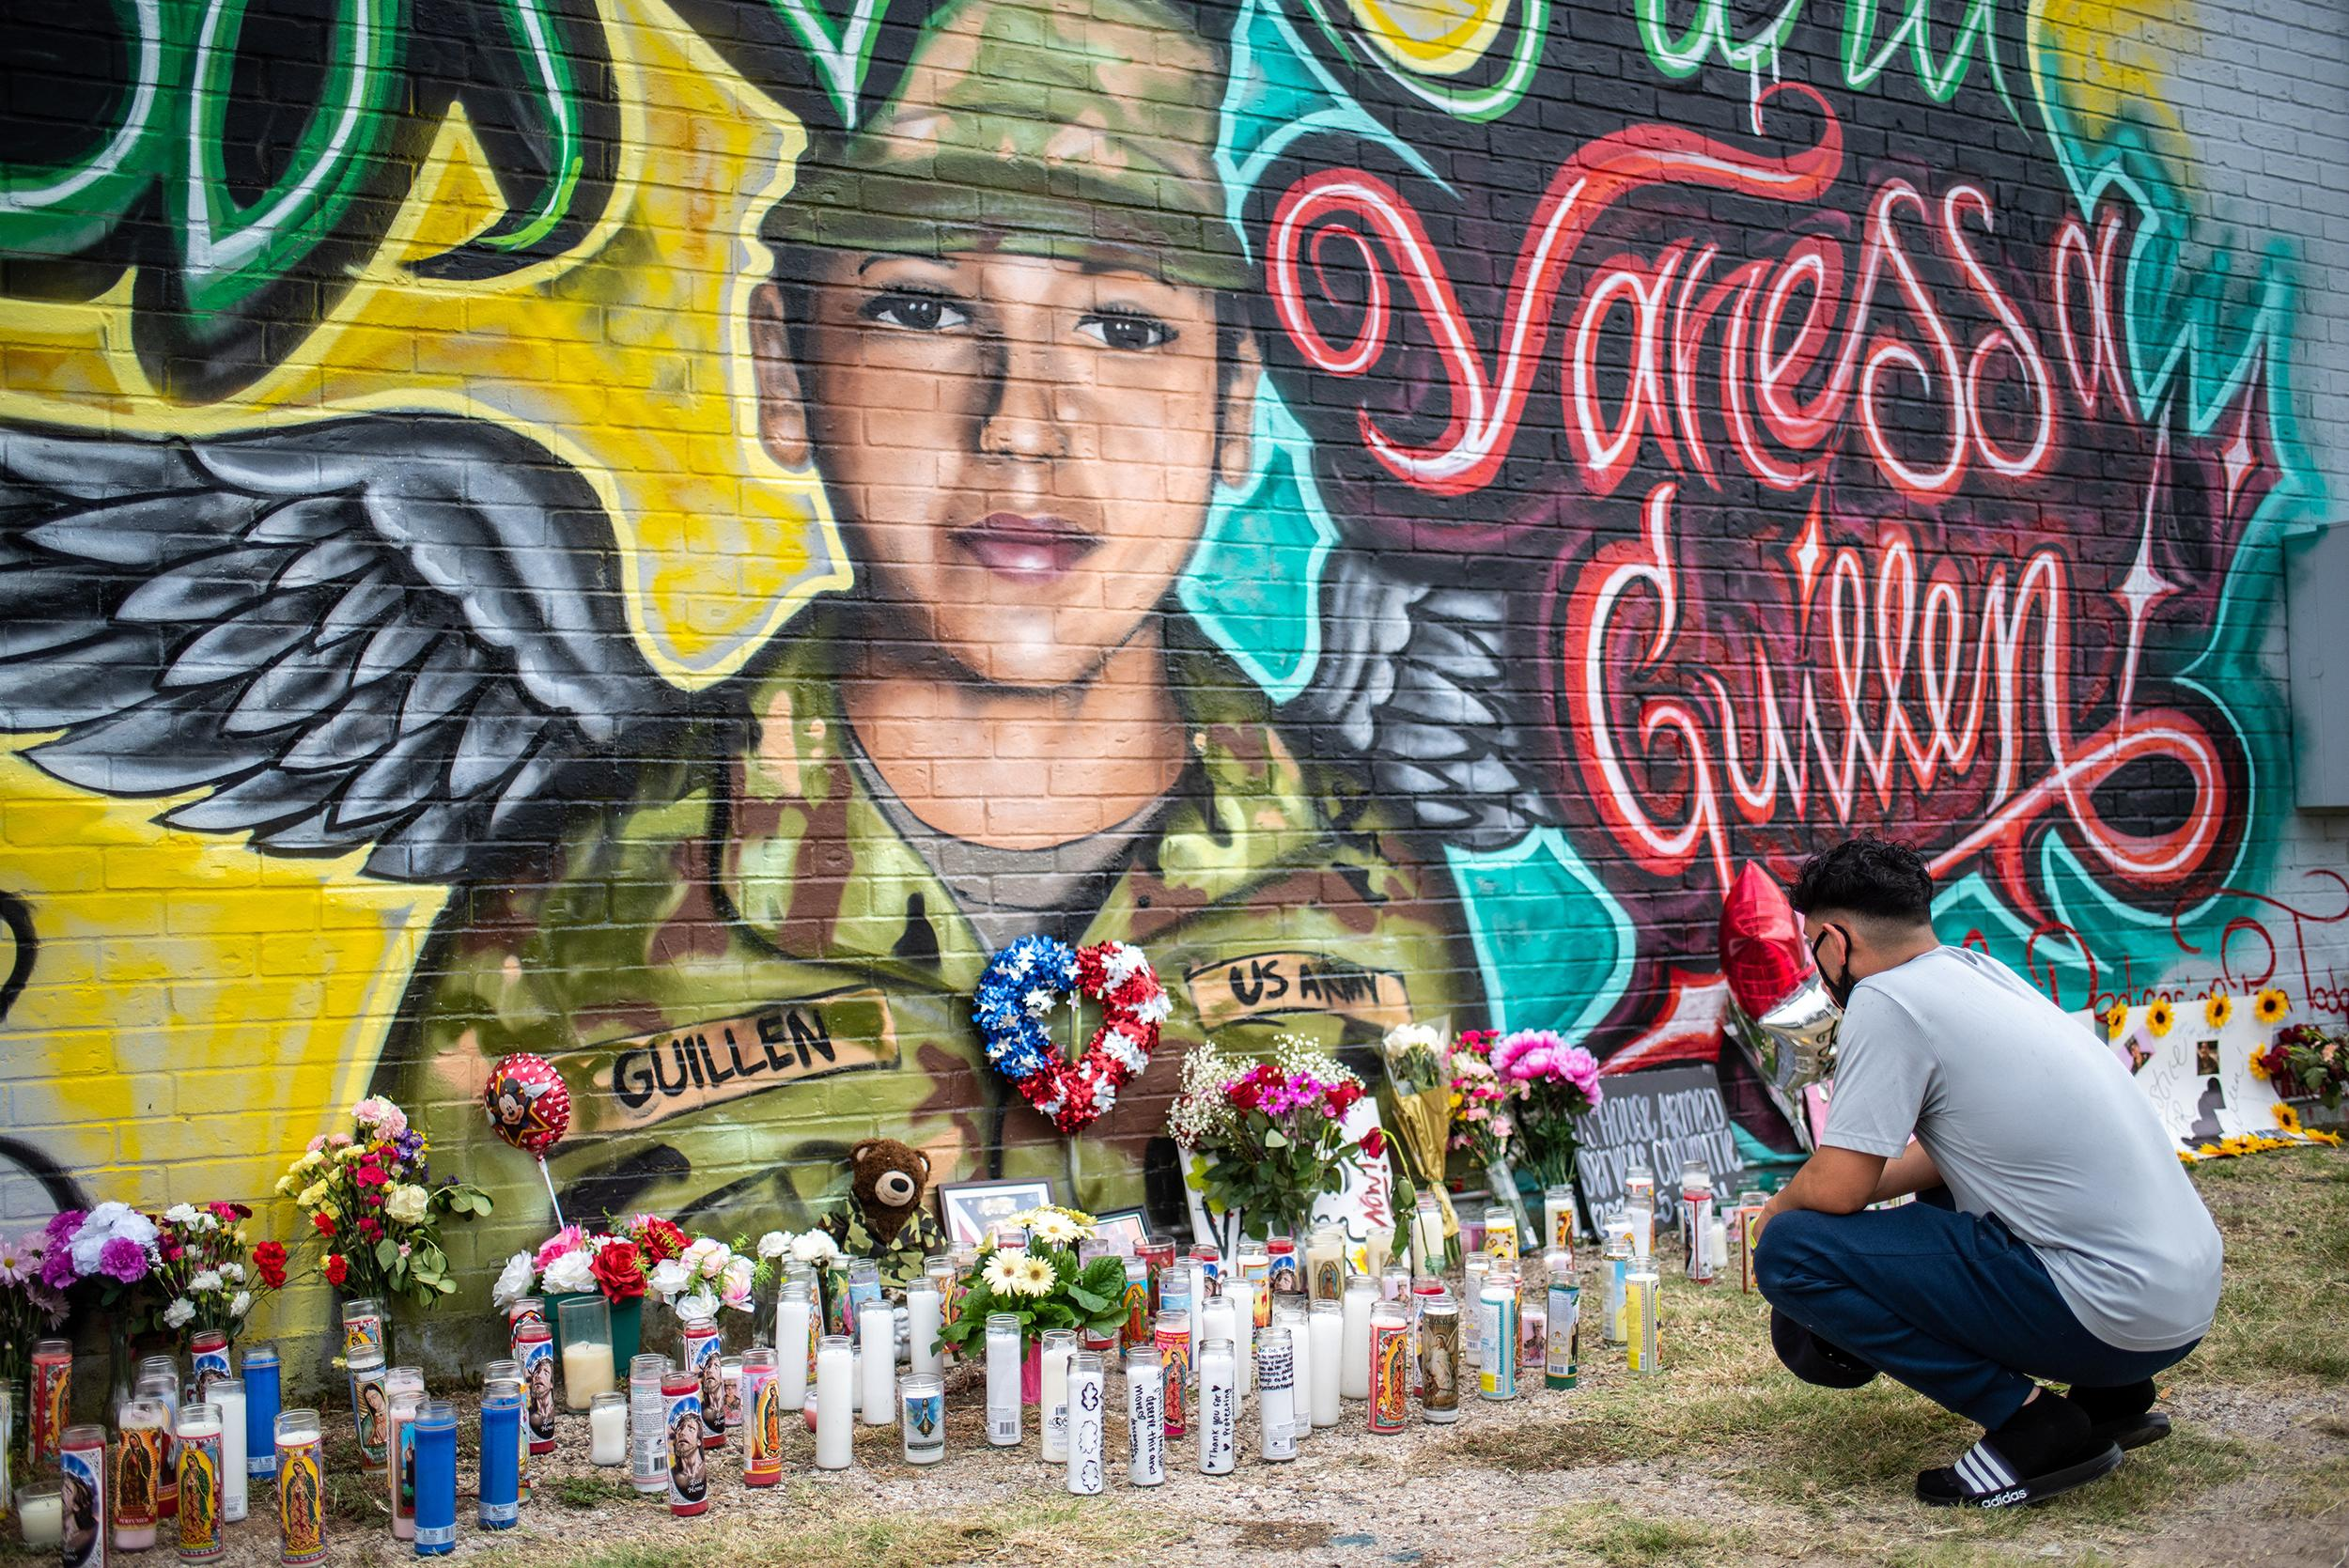 'We let her down': Army secretary vows changes after Vanessa Guillén killing